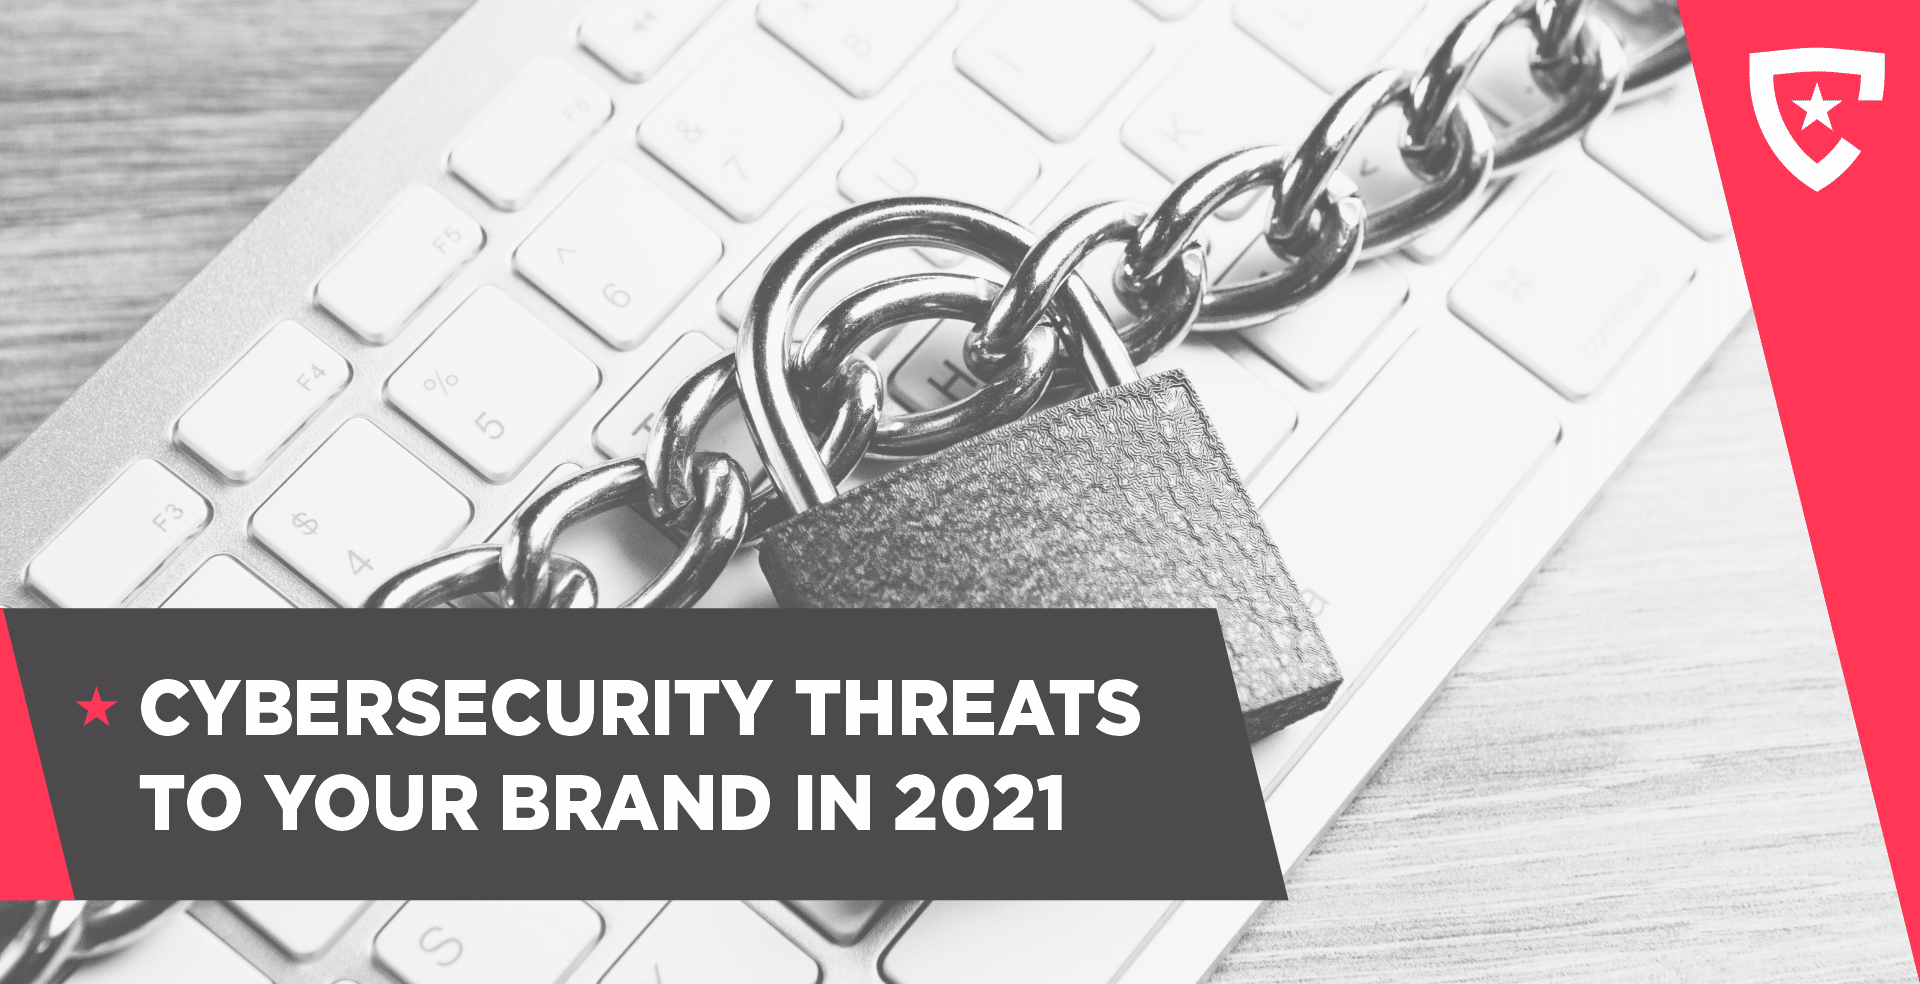 Cybersecurity Threats To Your Brand In 2021